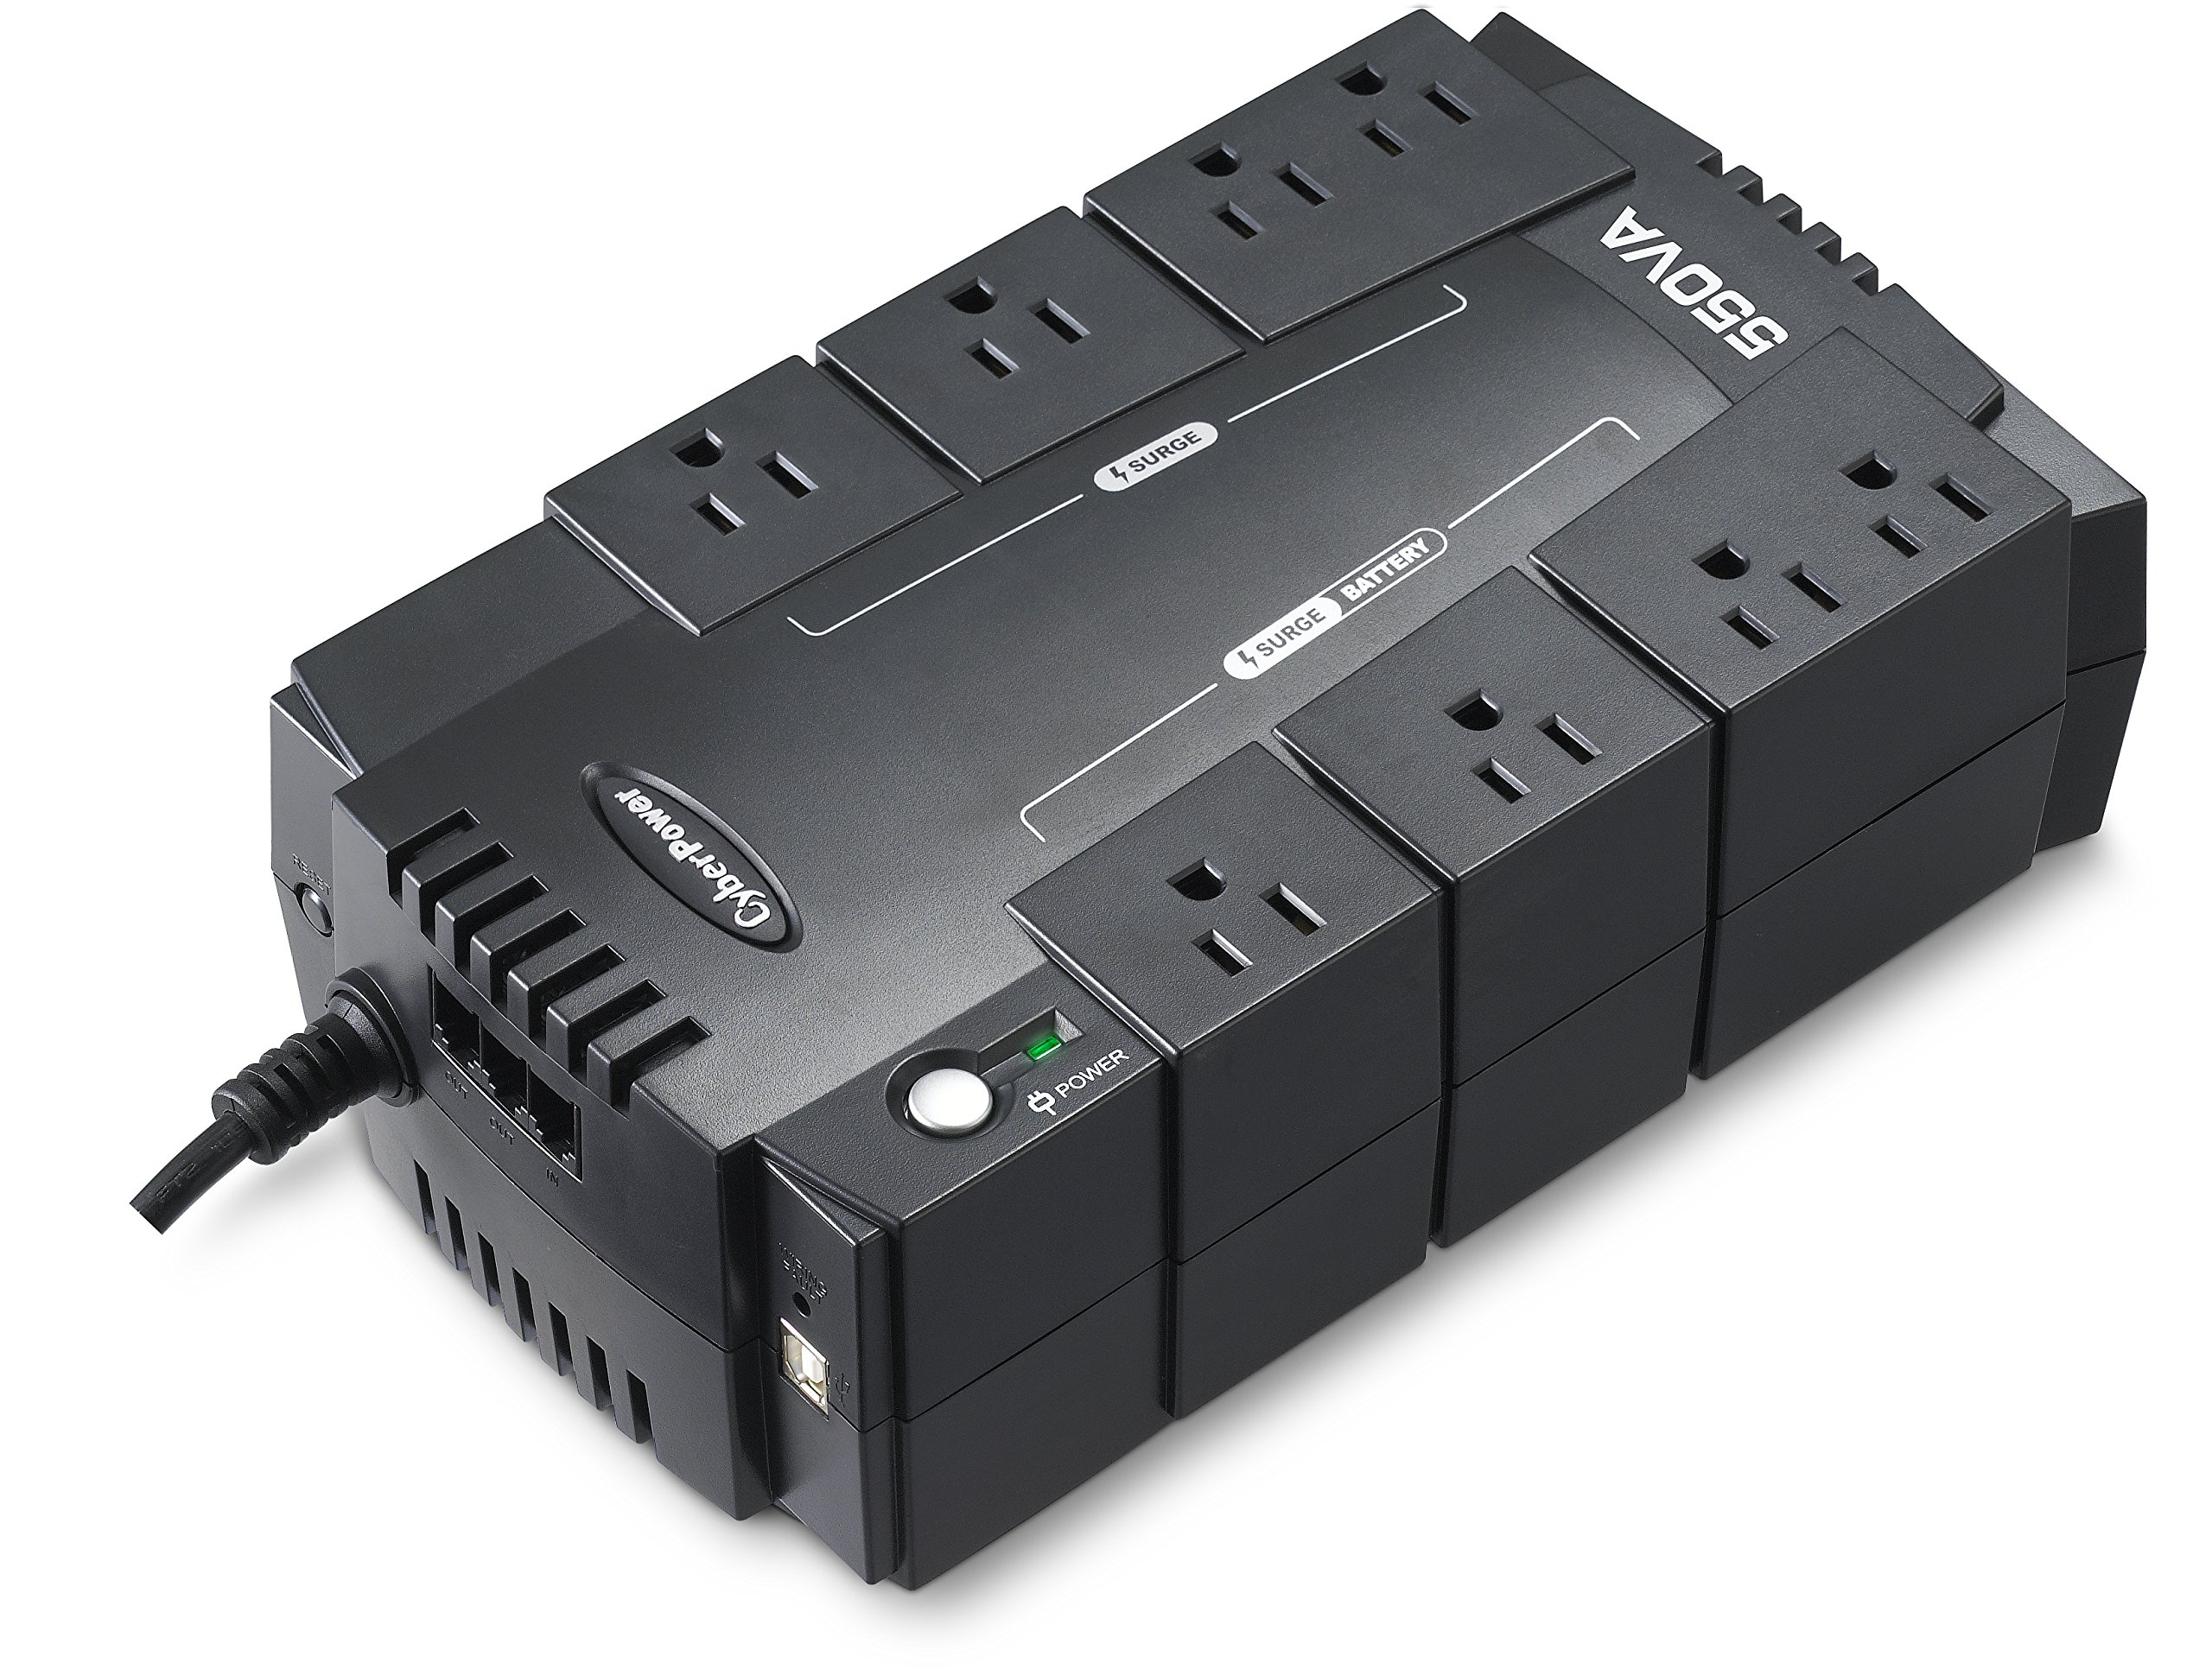 CyberPower CP550SLG Standby UPS System, 550VA/330W, 8 Outlets, Compact by CyberPower (Image #2)